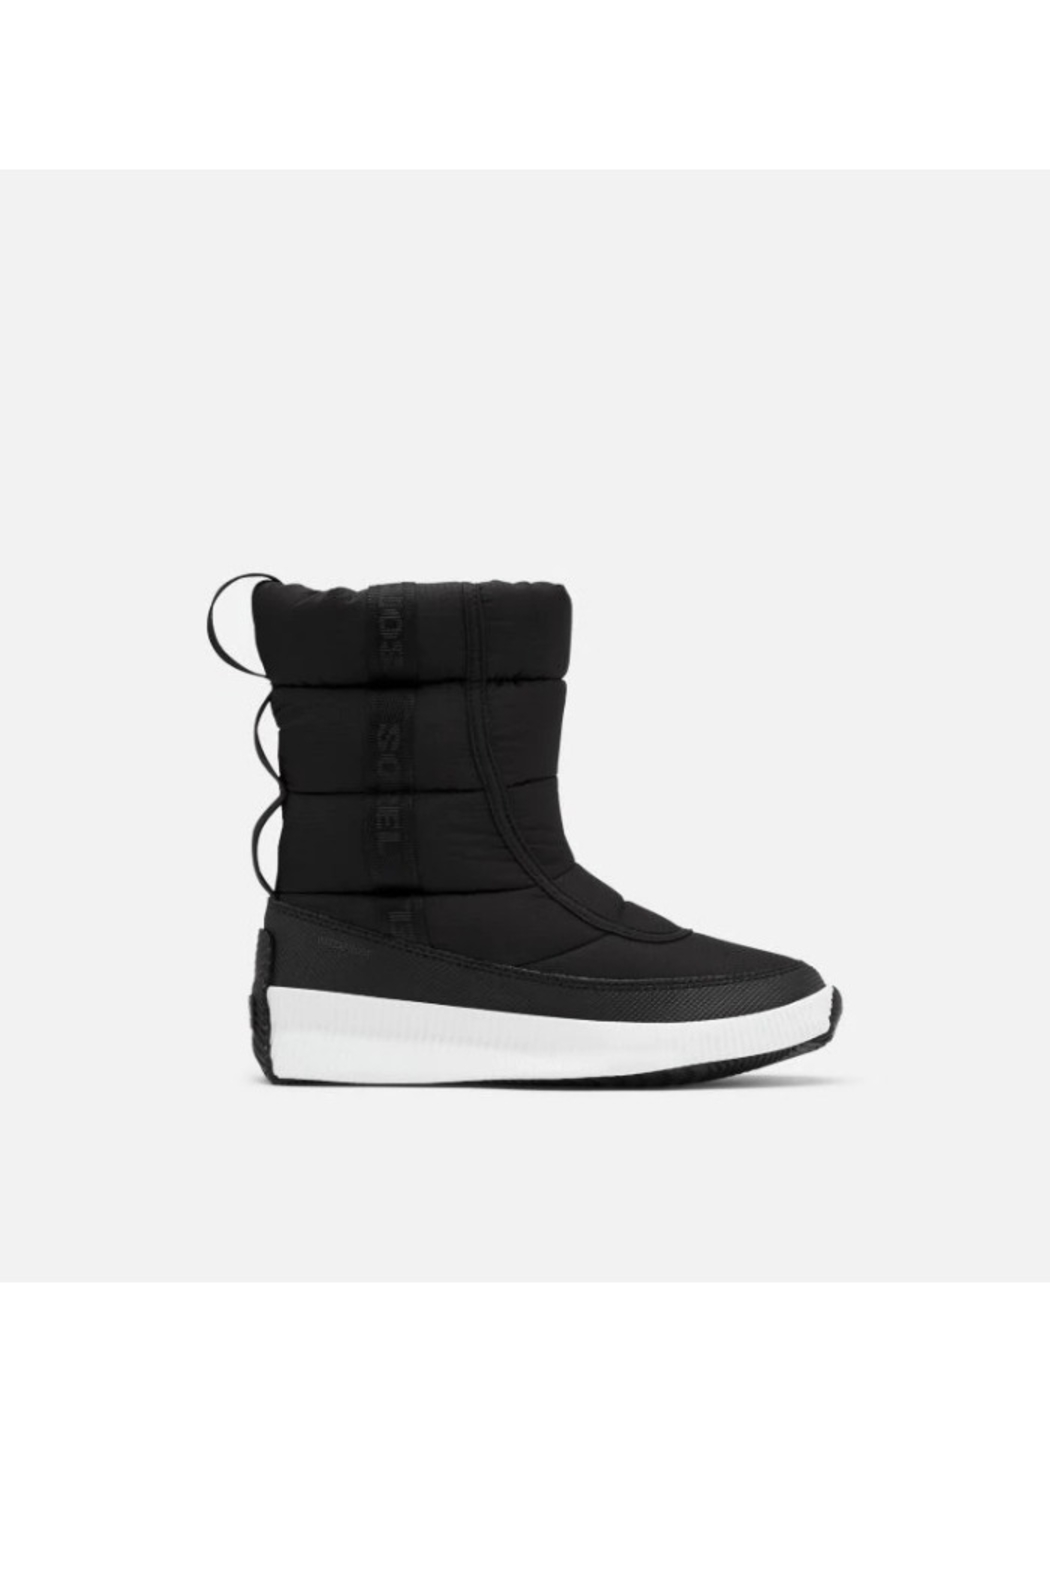 Sorel Women's Out N About Puffy Mid Boot - Main Image